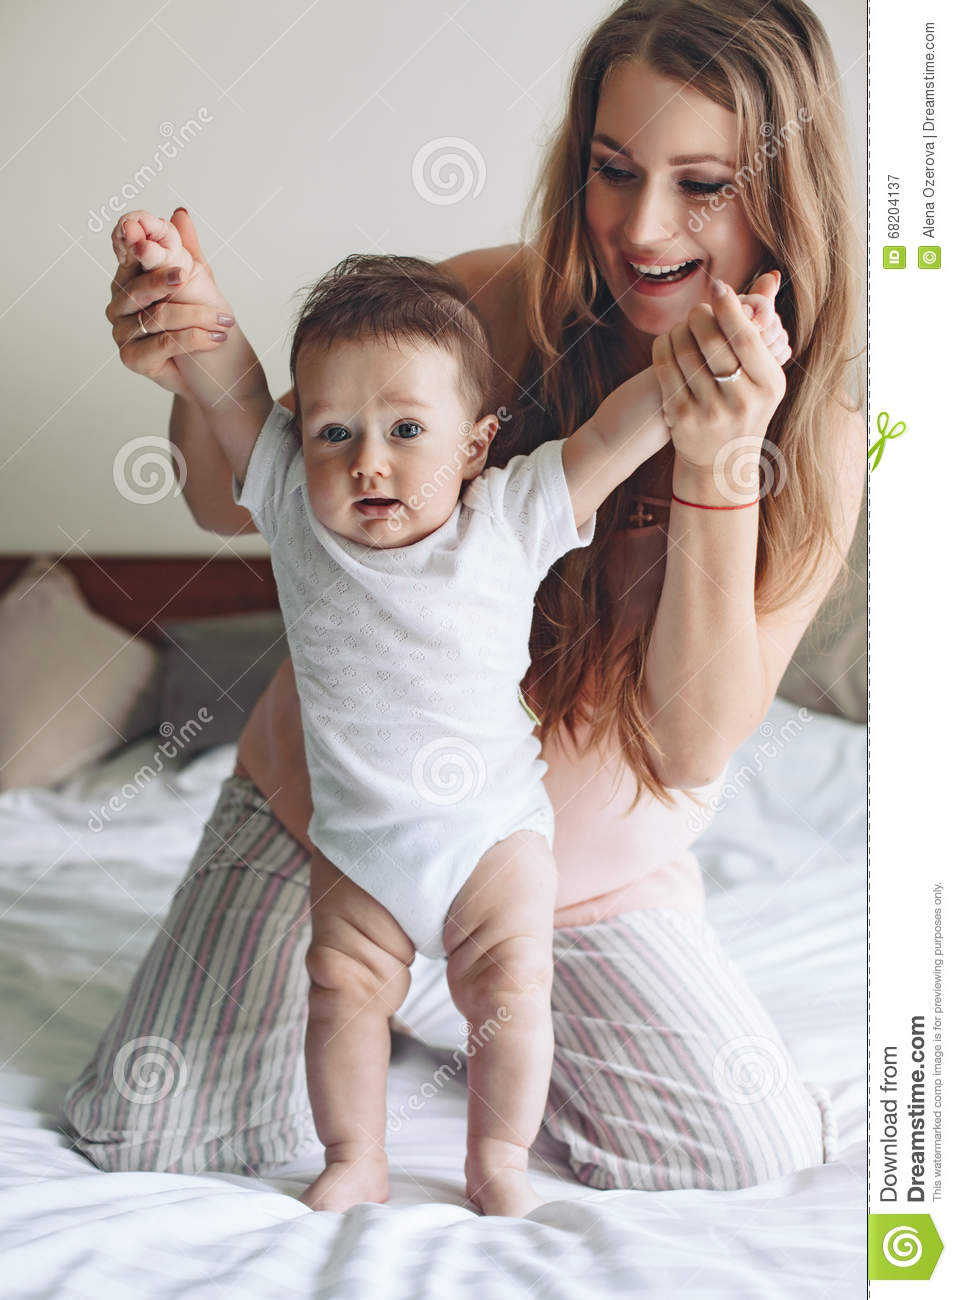 Mama with baby stock image. Image of baby, people, adult - 68204137